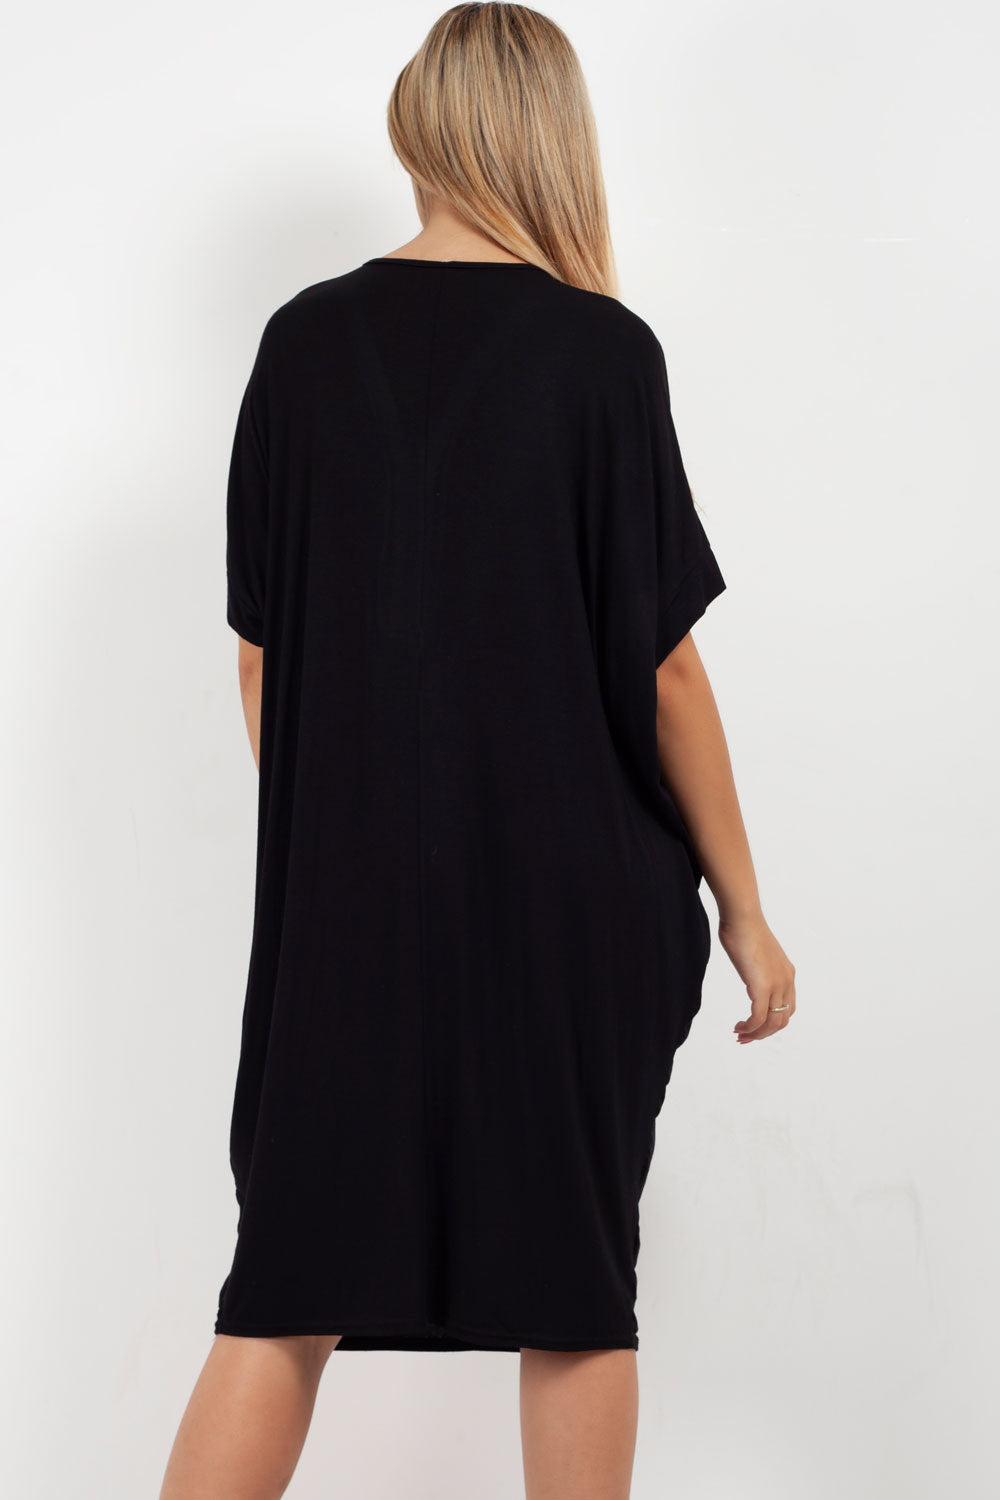 womens plus size oversized top